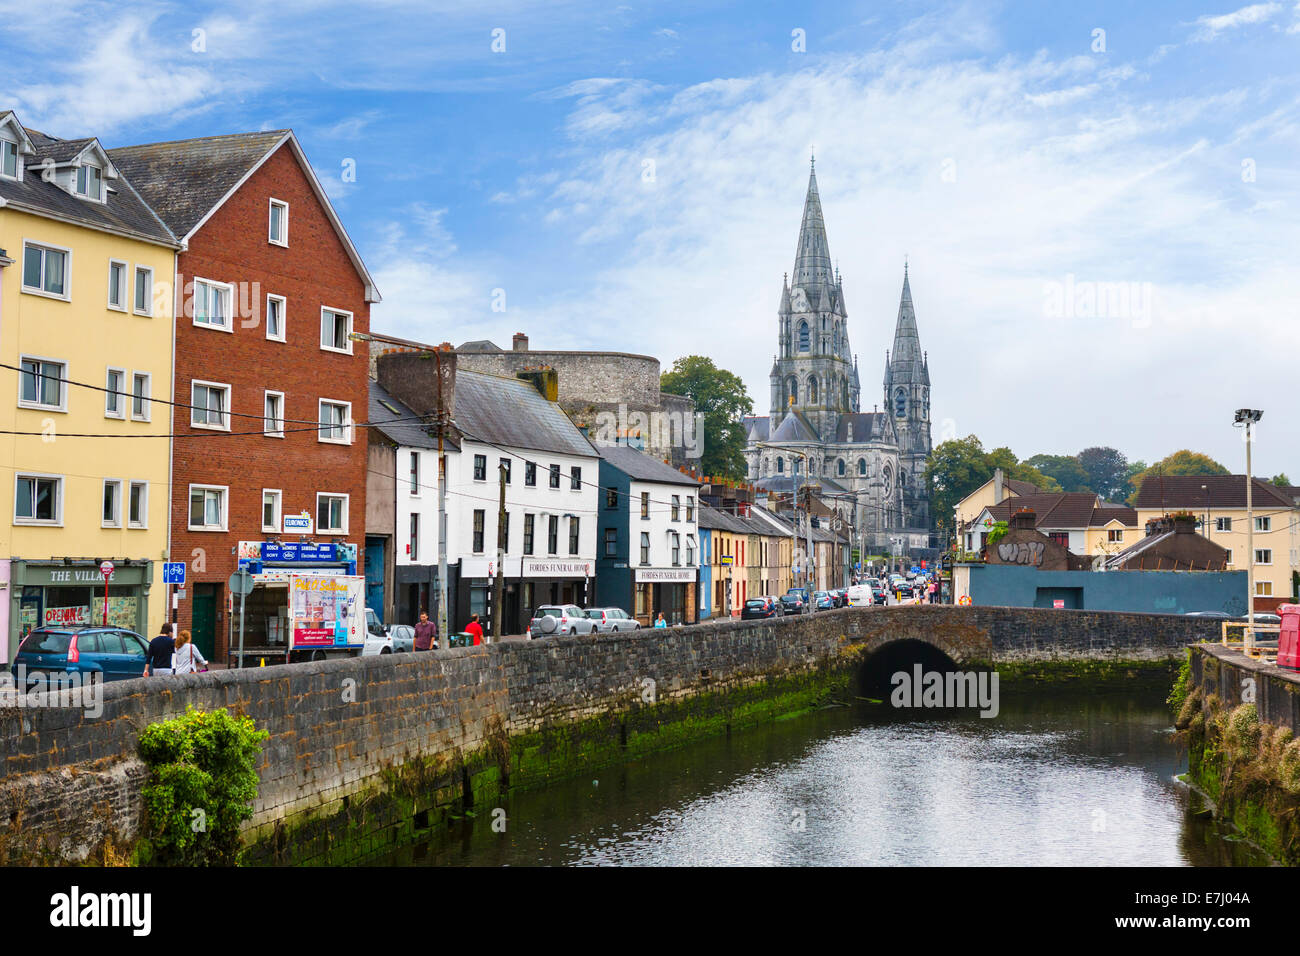 Cork, Ireland. Saint Fin Barre's Cathedral and the River Lee, Cork City, County Cork, Republic of Ireland - Stock Image